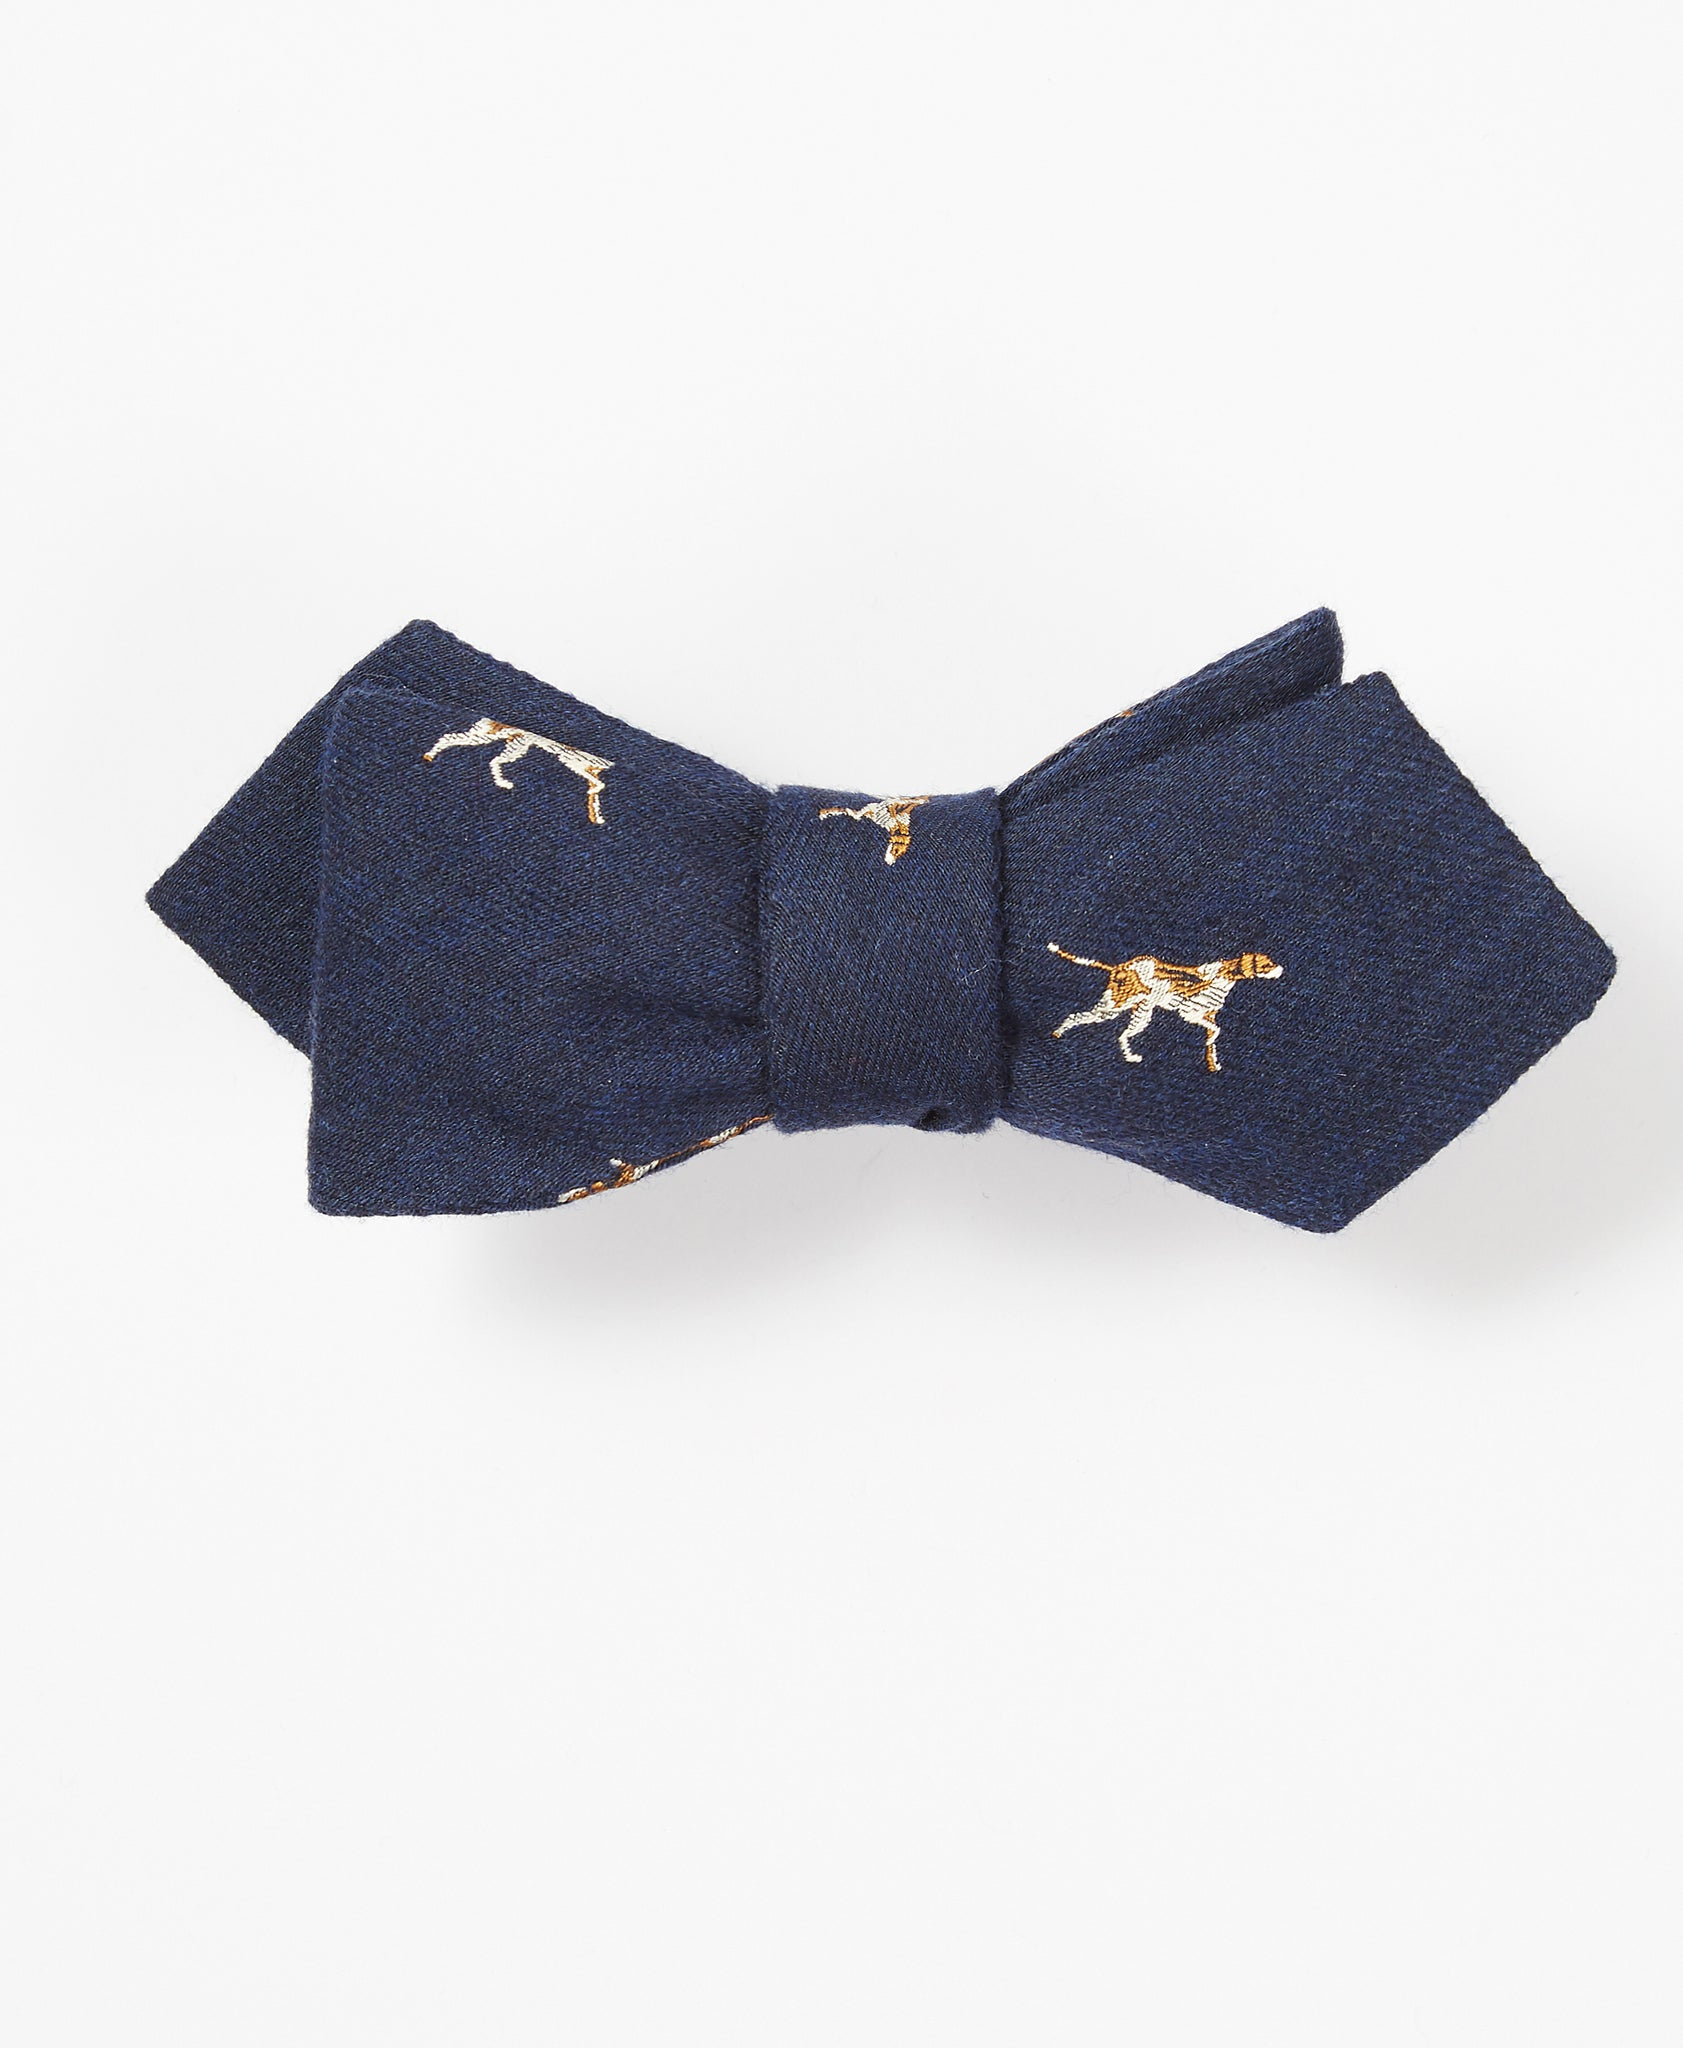 The Hunting Dog Bow Tie